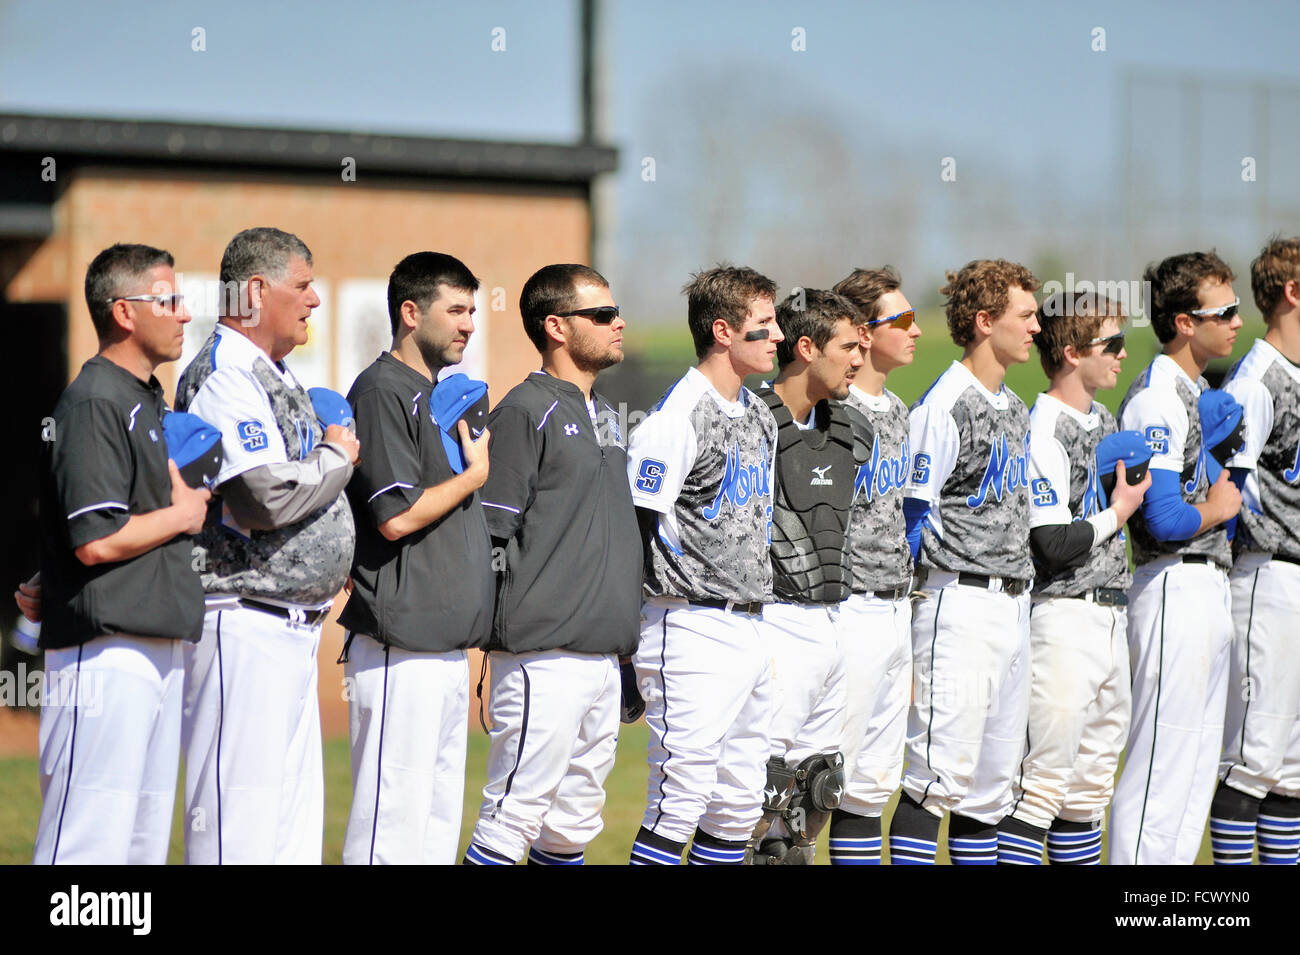 Players and coaches of a high school baseball team line during the national anthem prior to the start of a game. - Stock Image